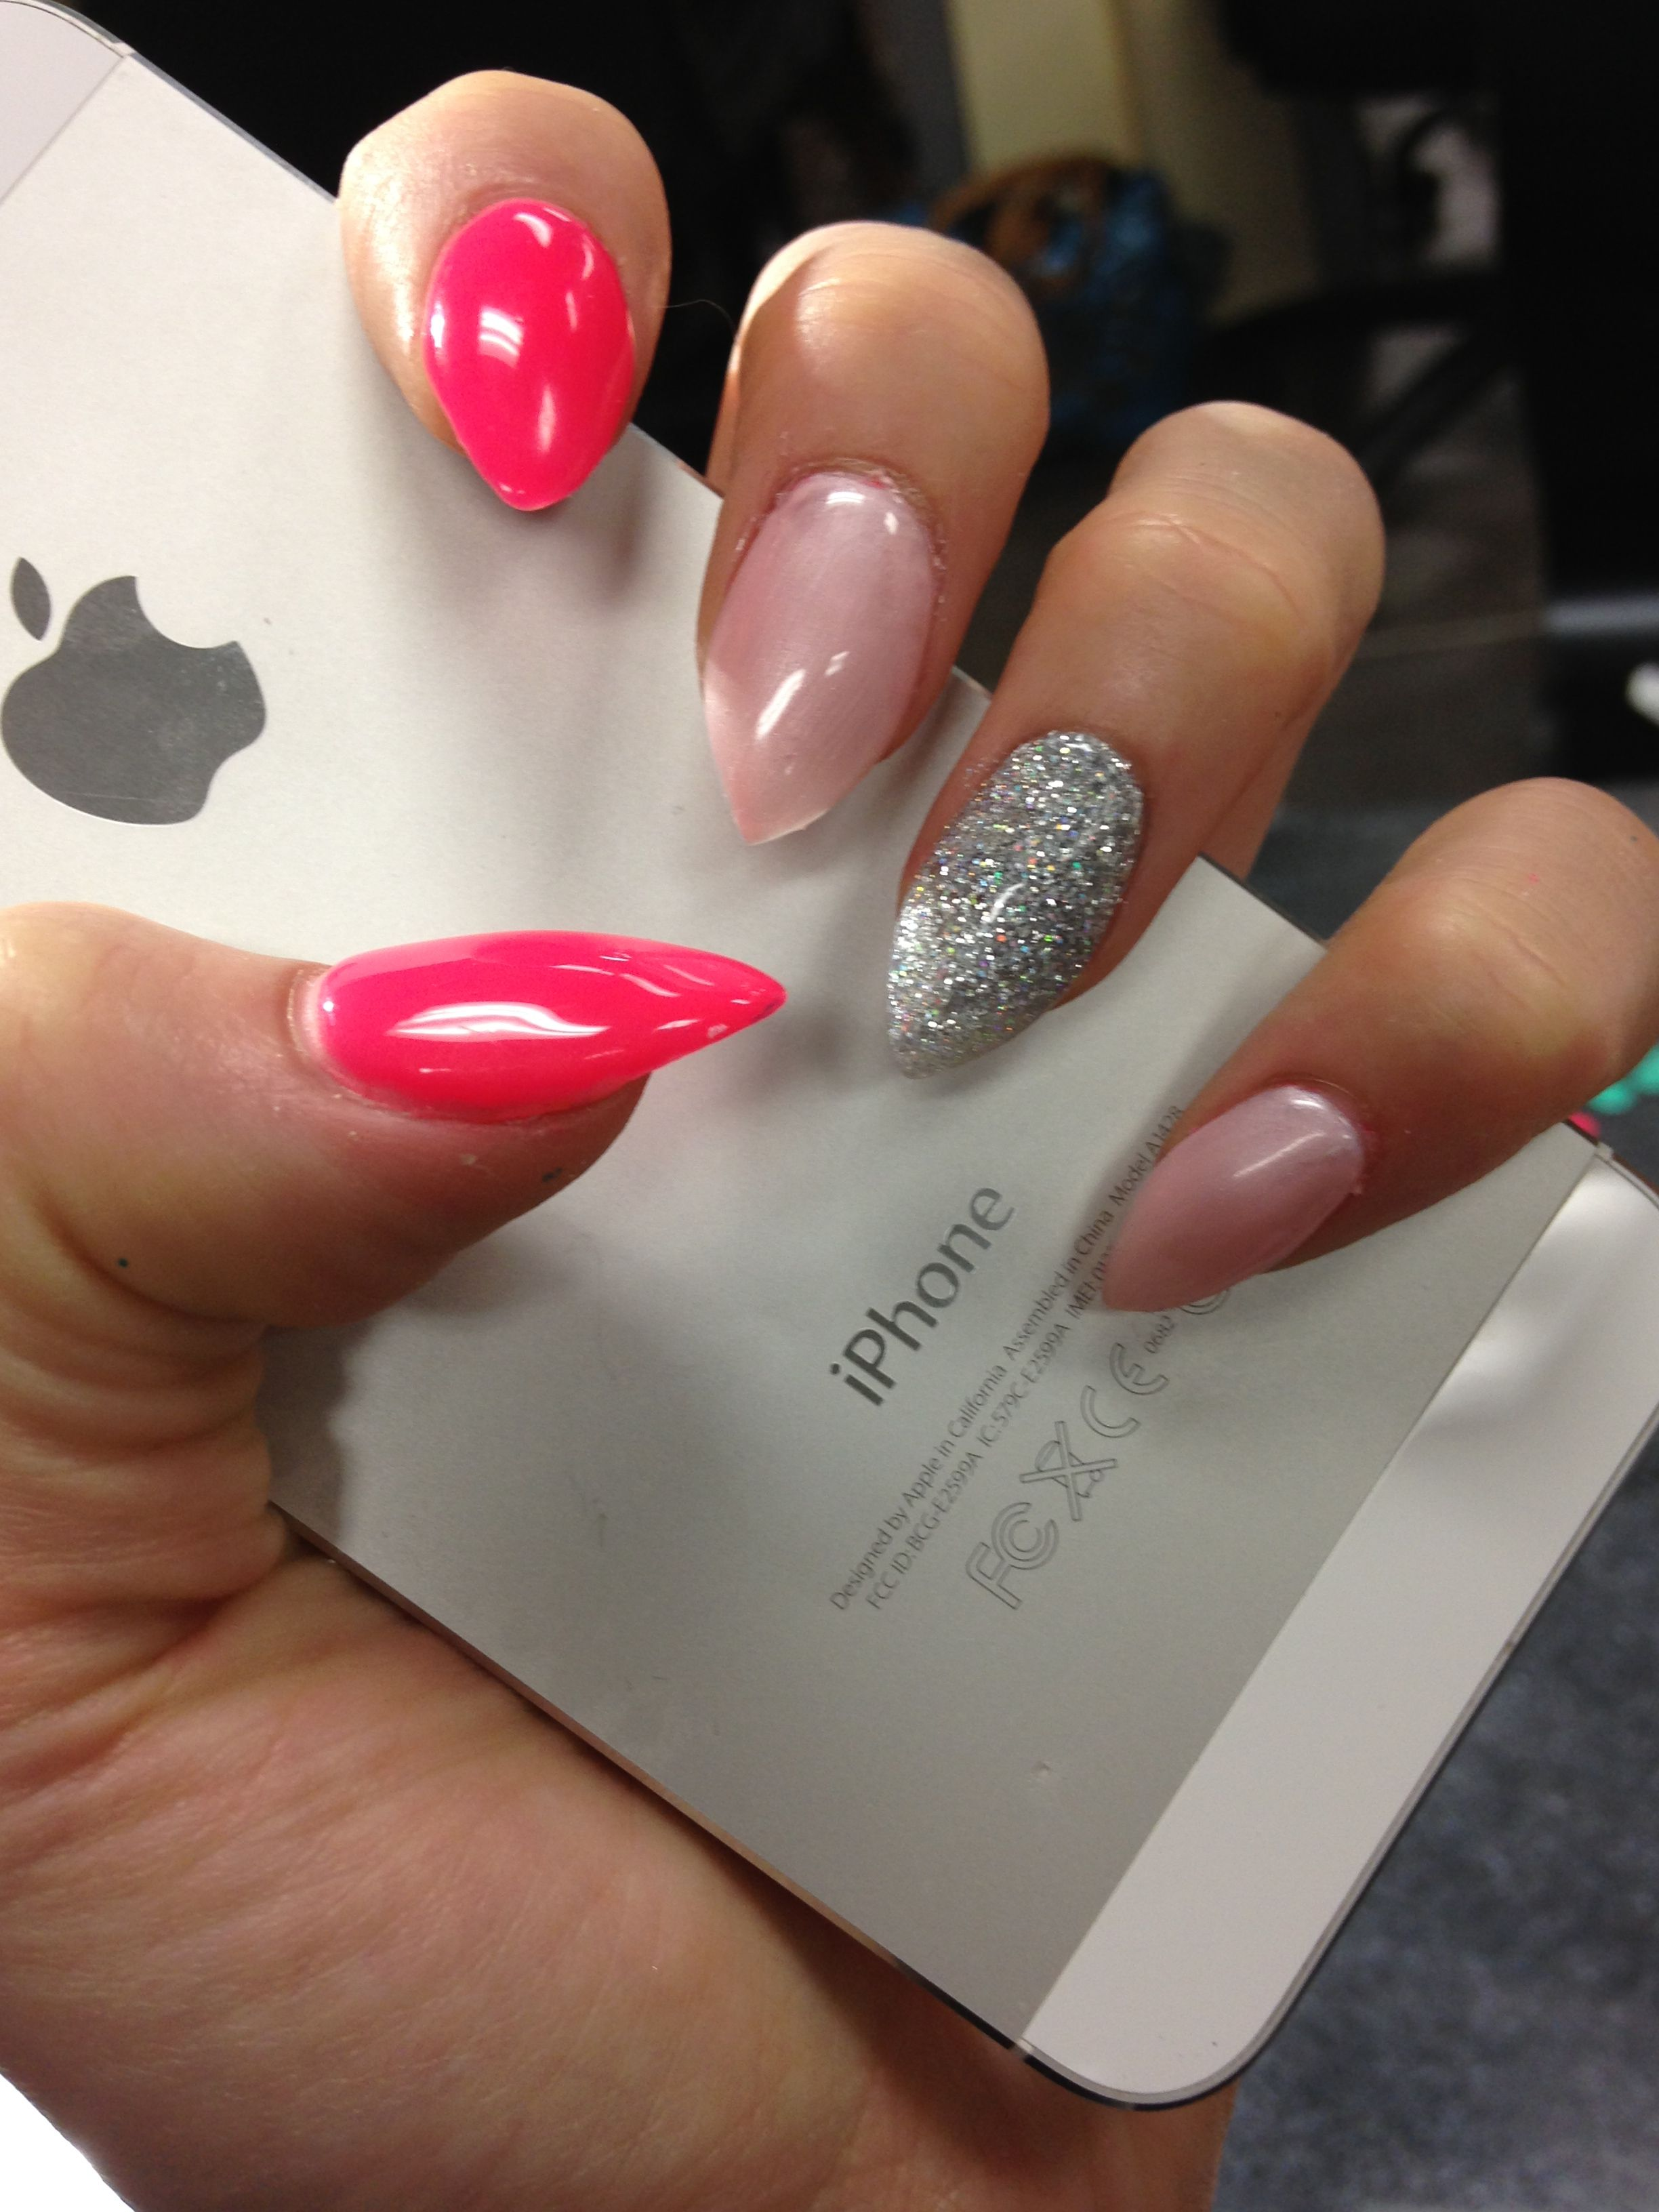 Pin By Solange Quilumba On Nail Glam Acrylic Nails Neon Nails Acrylic Nails Coffin